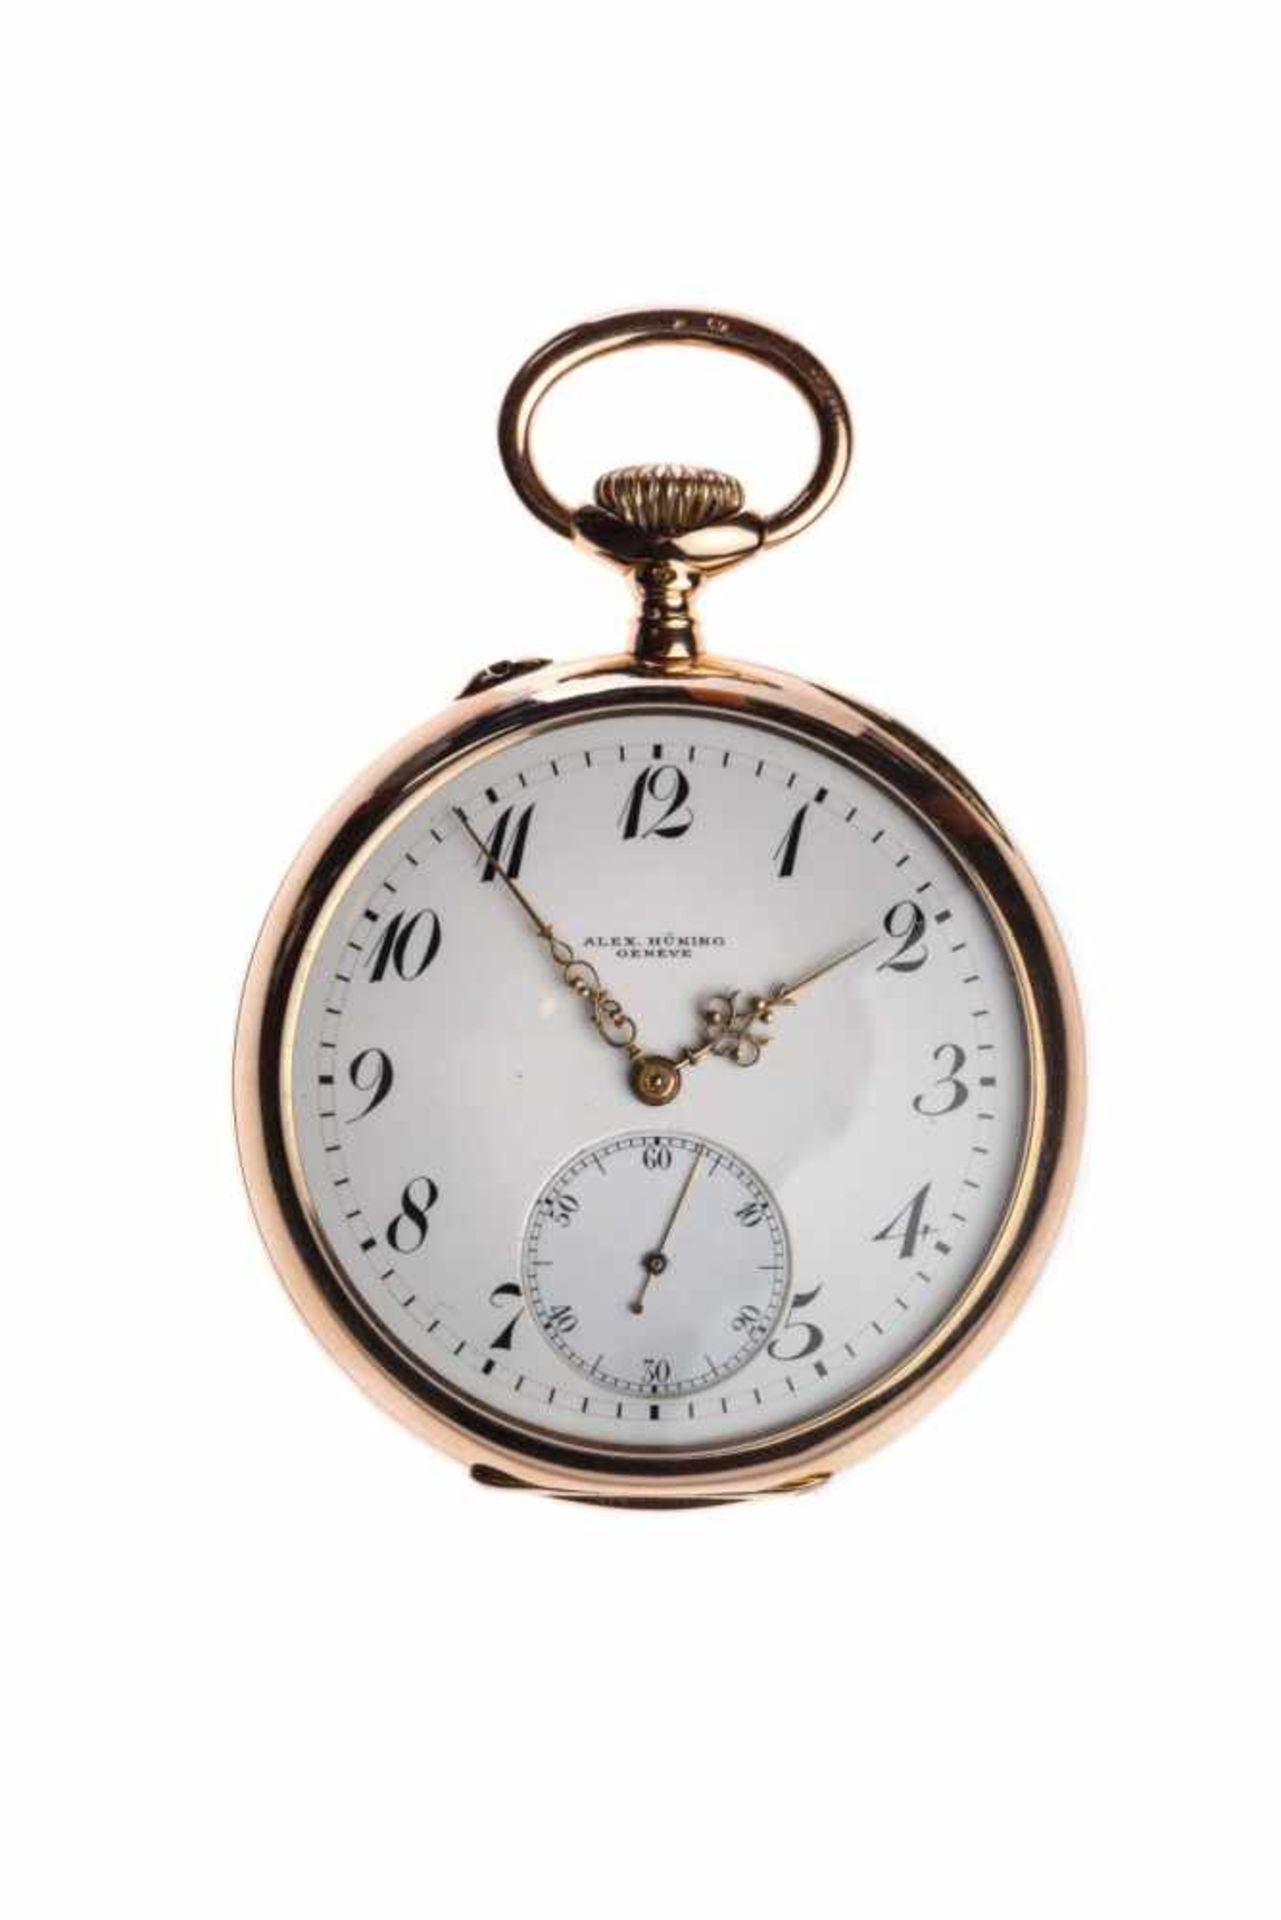 Los 80 - Axel Hüning14K gold Lepine pocket watch from the master Alex Hüning ca 1890, fine Swiss bridge